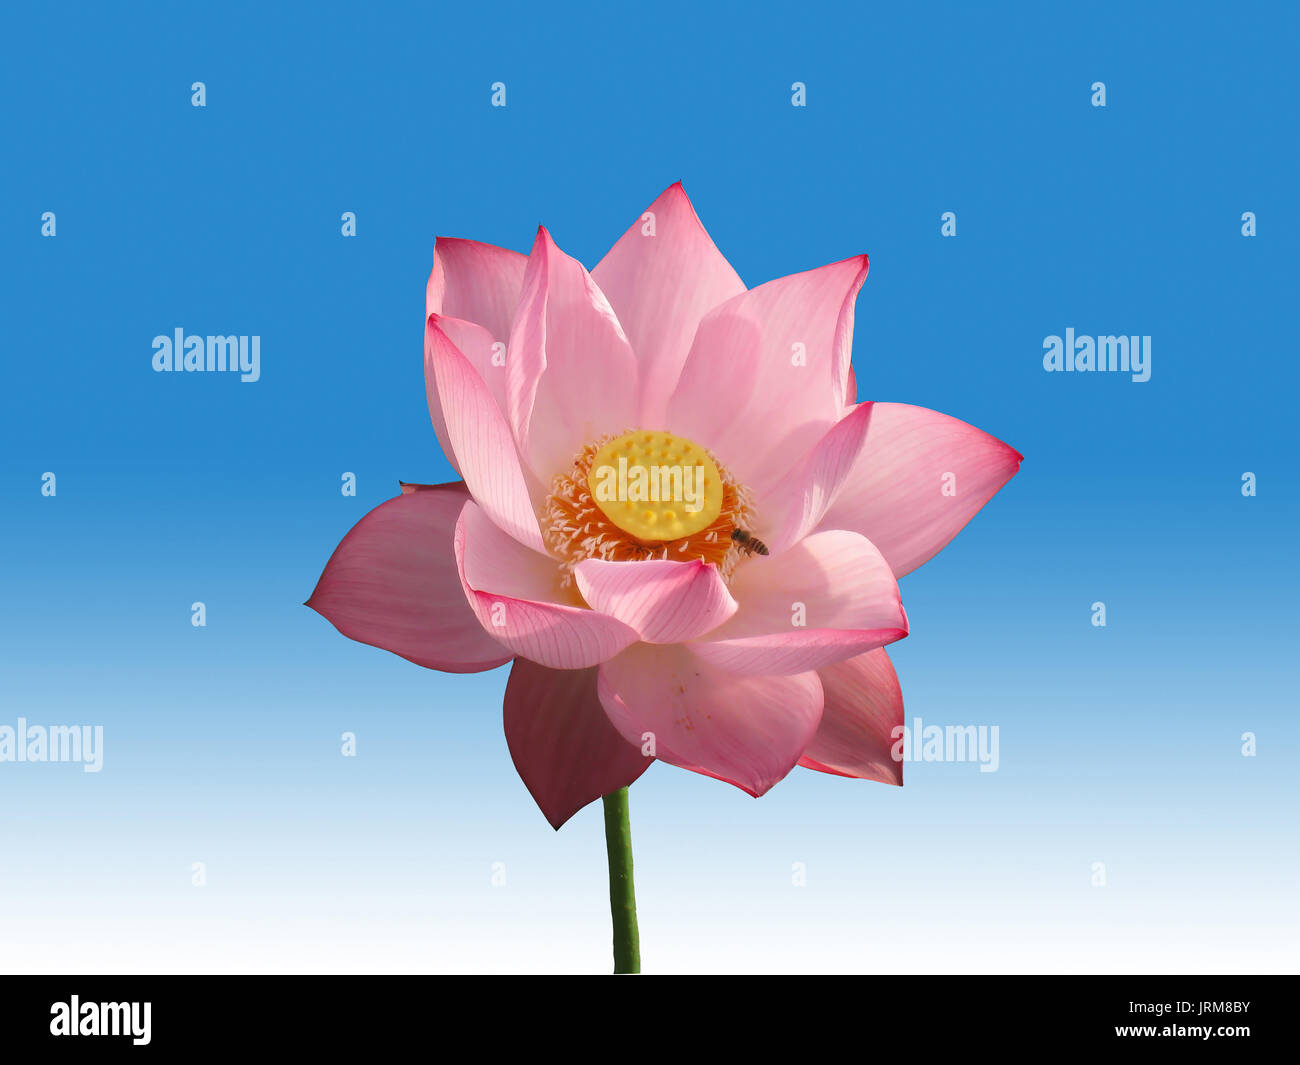 Pink lotus flower isolated on blue and white background stock photo pink lotus flower isolated on blue and white background izmirmasajfo